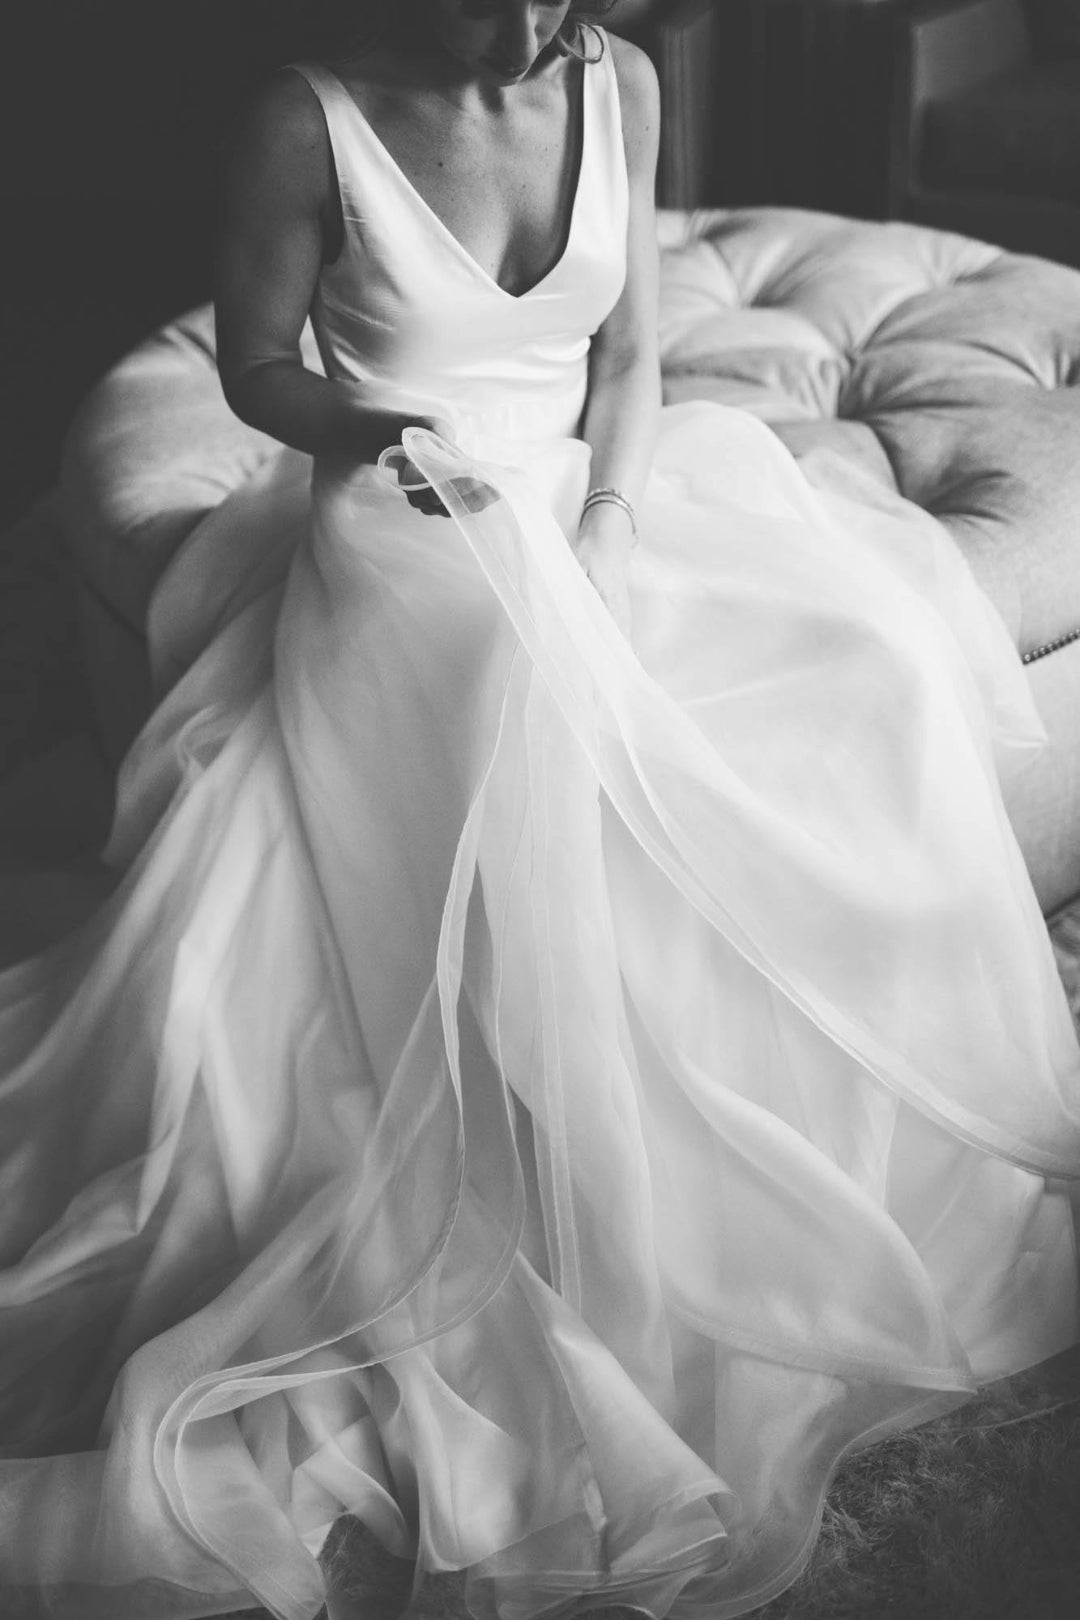 Black and white photo of a bride holding the skirt of her bridal dress